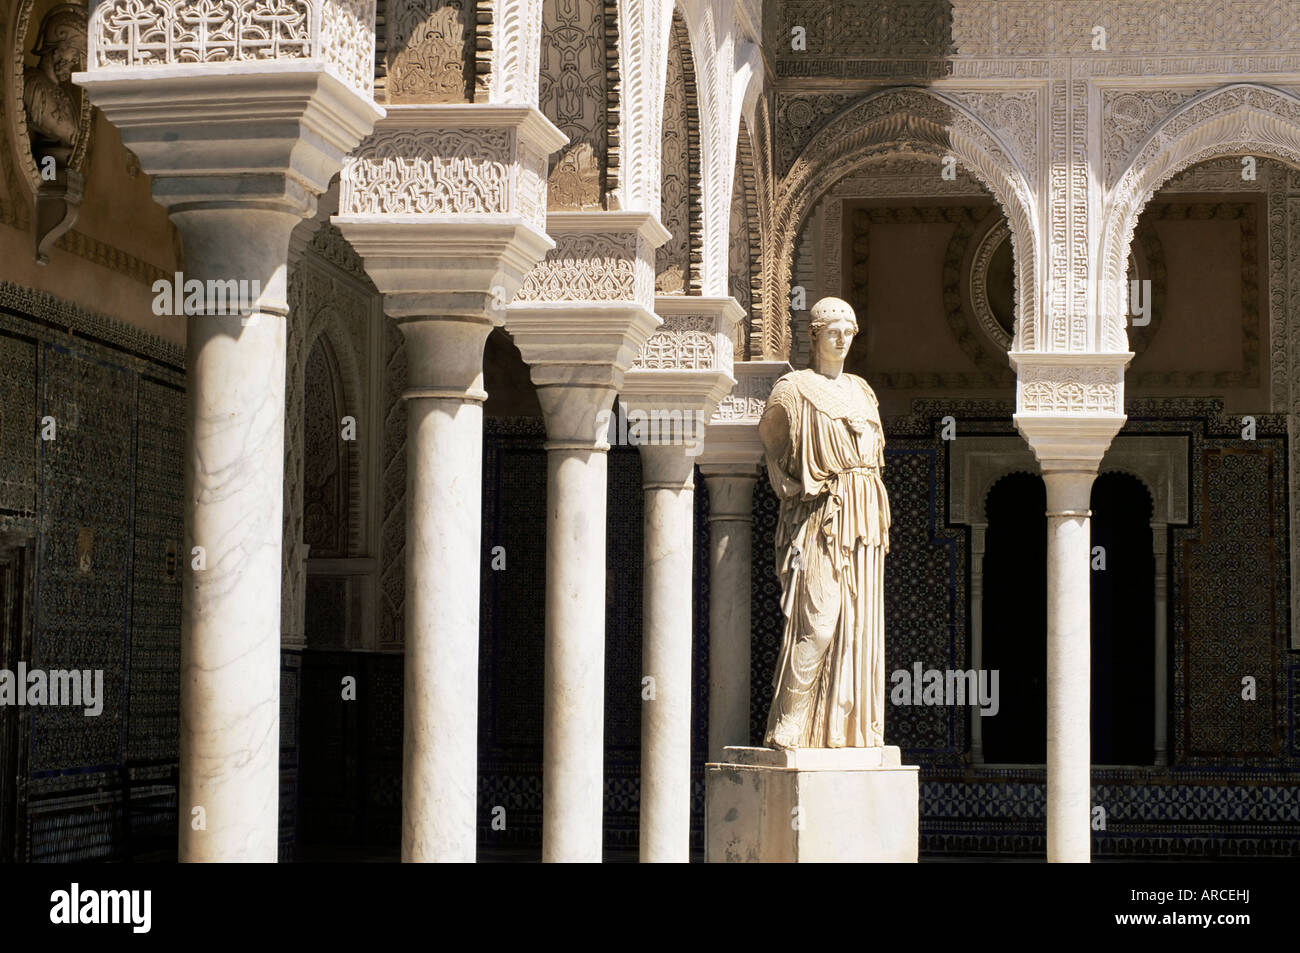 Mudejar arches and Greek statue of Athene in the Patio Principal, Casa de Pilatos, Seville, Andalucia (Andalusia), - Stock Image